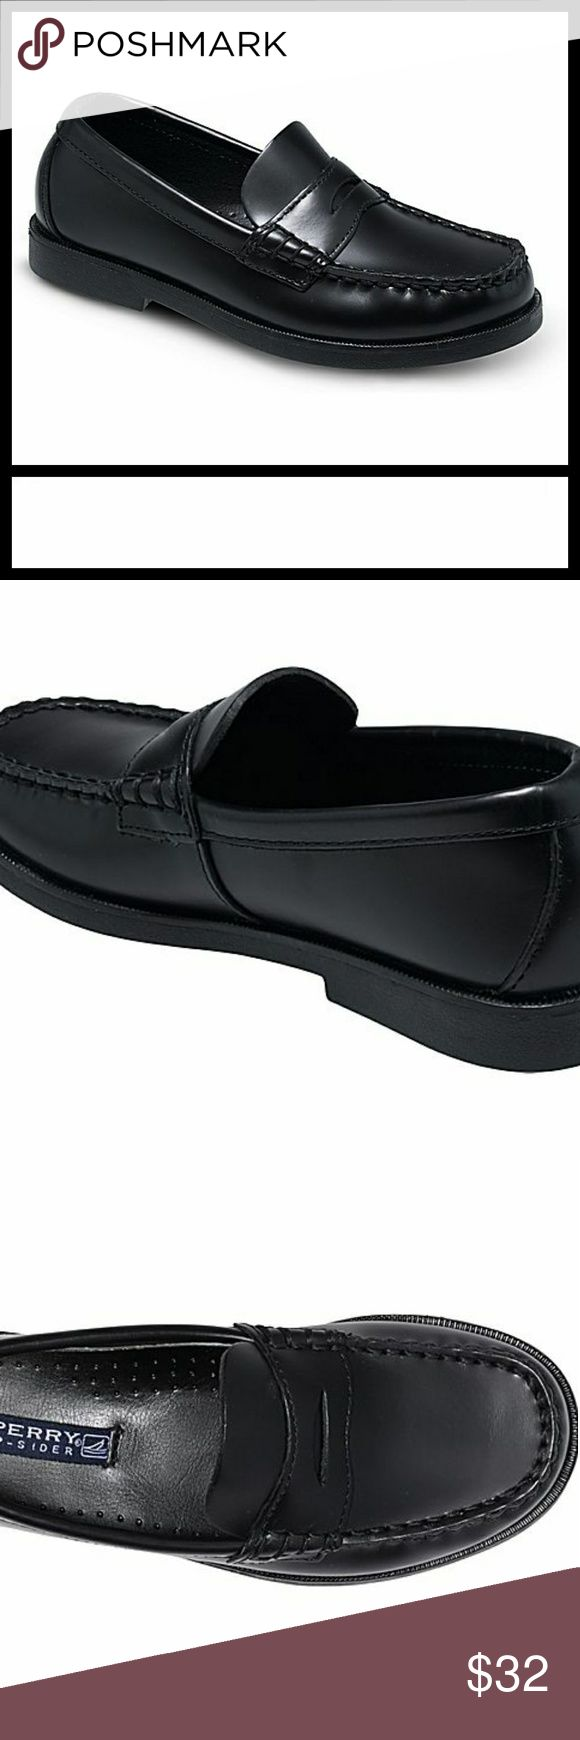 Black Leather Pennyloafer Colton Boat Shoe From Sperry site: SPERRY TOP-SIDER COLTON PENNY LOAFER (TODDLER/LITTLE KID/BIG KID)  Color:Black Leather  Rubber sole Traditional penny loafer featuring moc-toe stitching and keeper Grippy outsoleLeather Heel measures approximately 1″  Worn once Sperry Top-Sider Shoes Dress Shoes